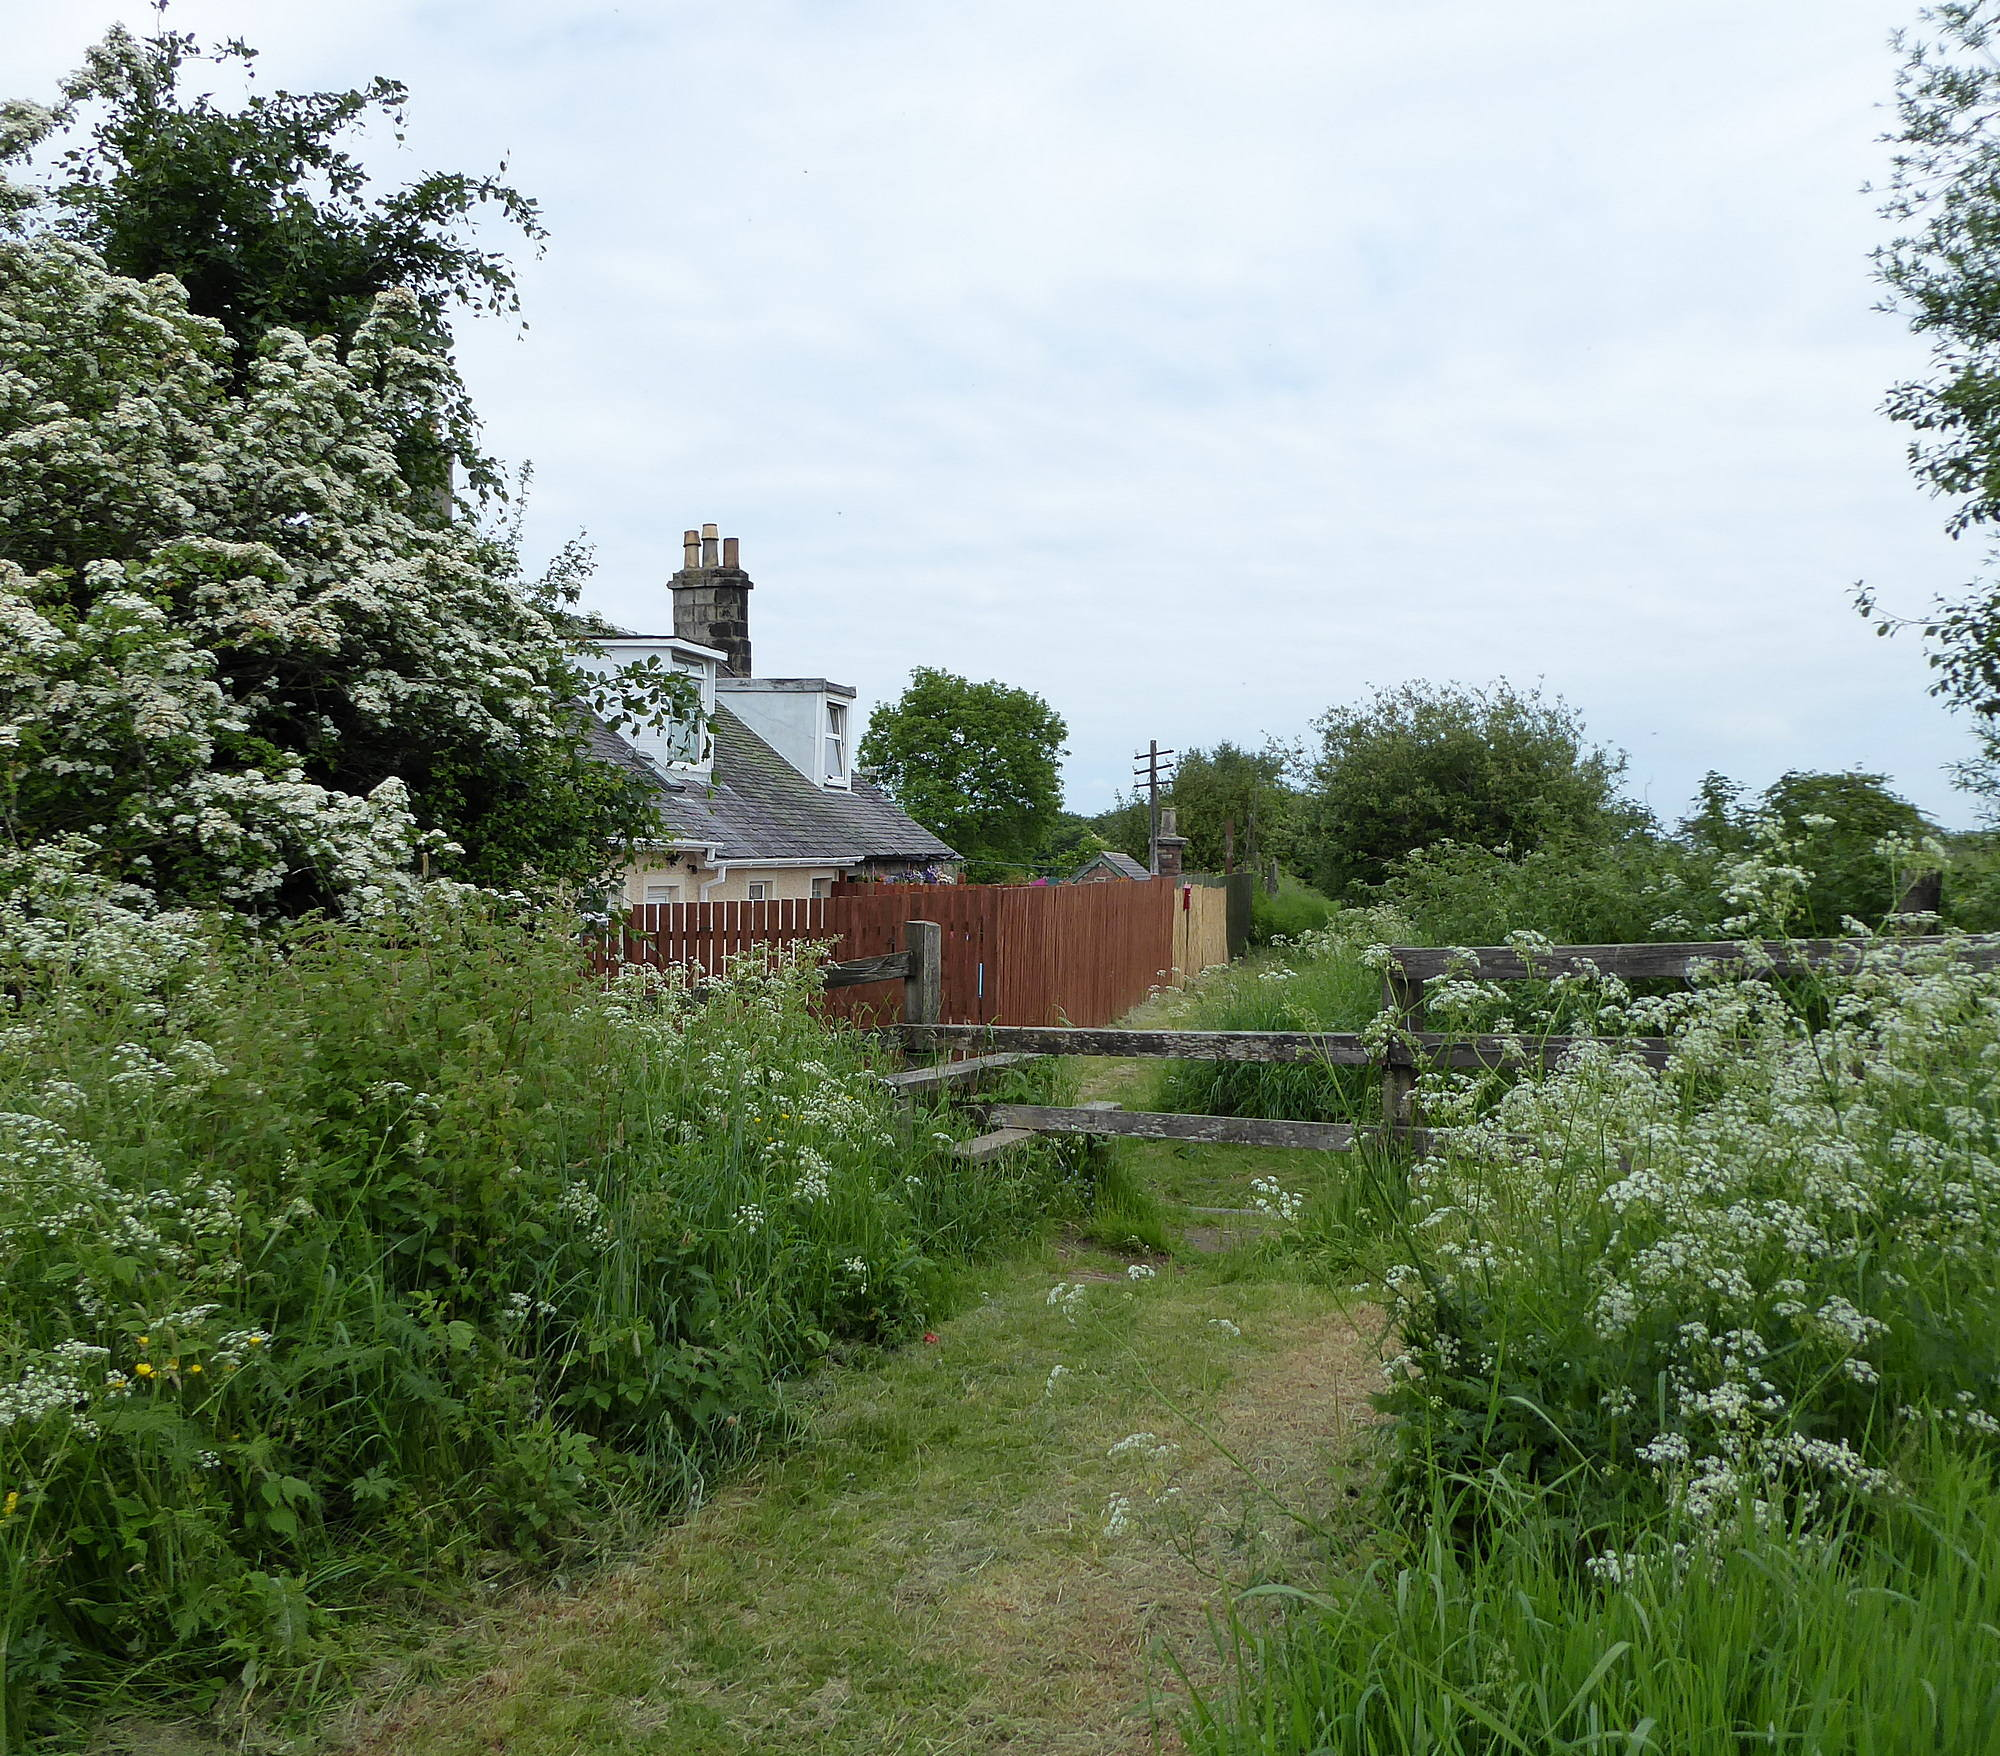 Railway cottages and style over railway path. 8th June 2018